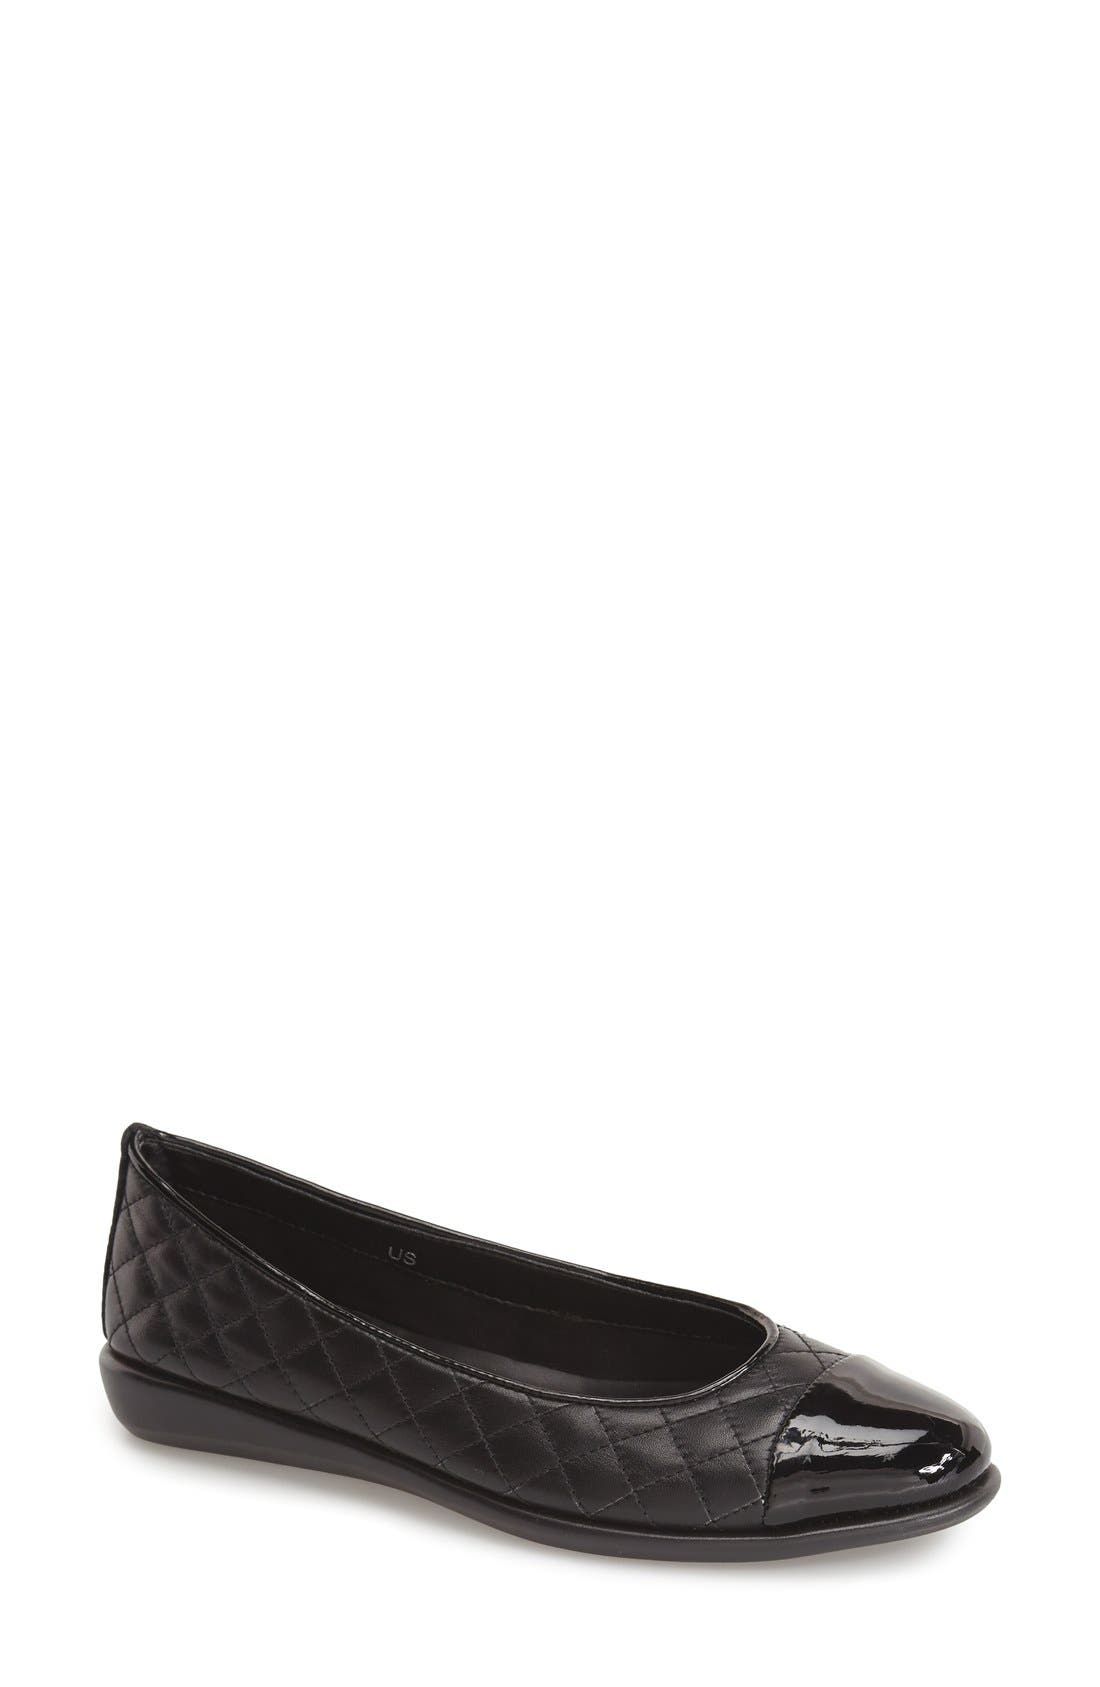 Main Image - The FLEXX 'Rise a Smile' Quilted Leather Flat (Women)